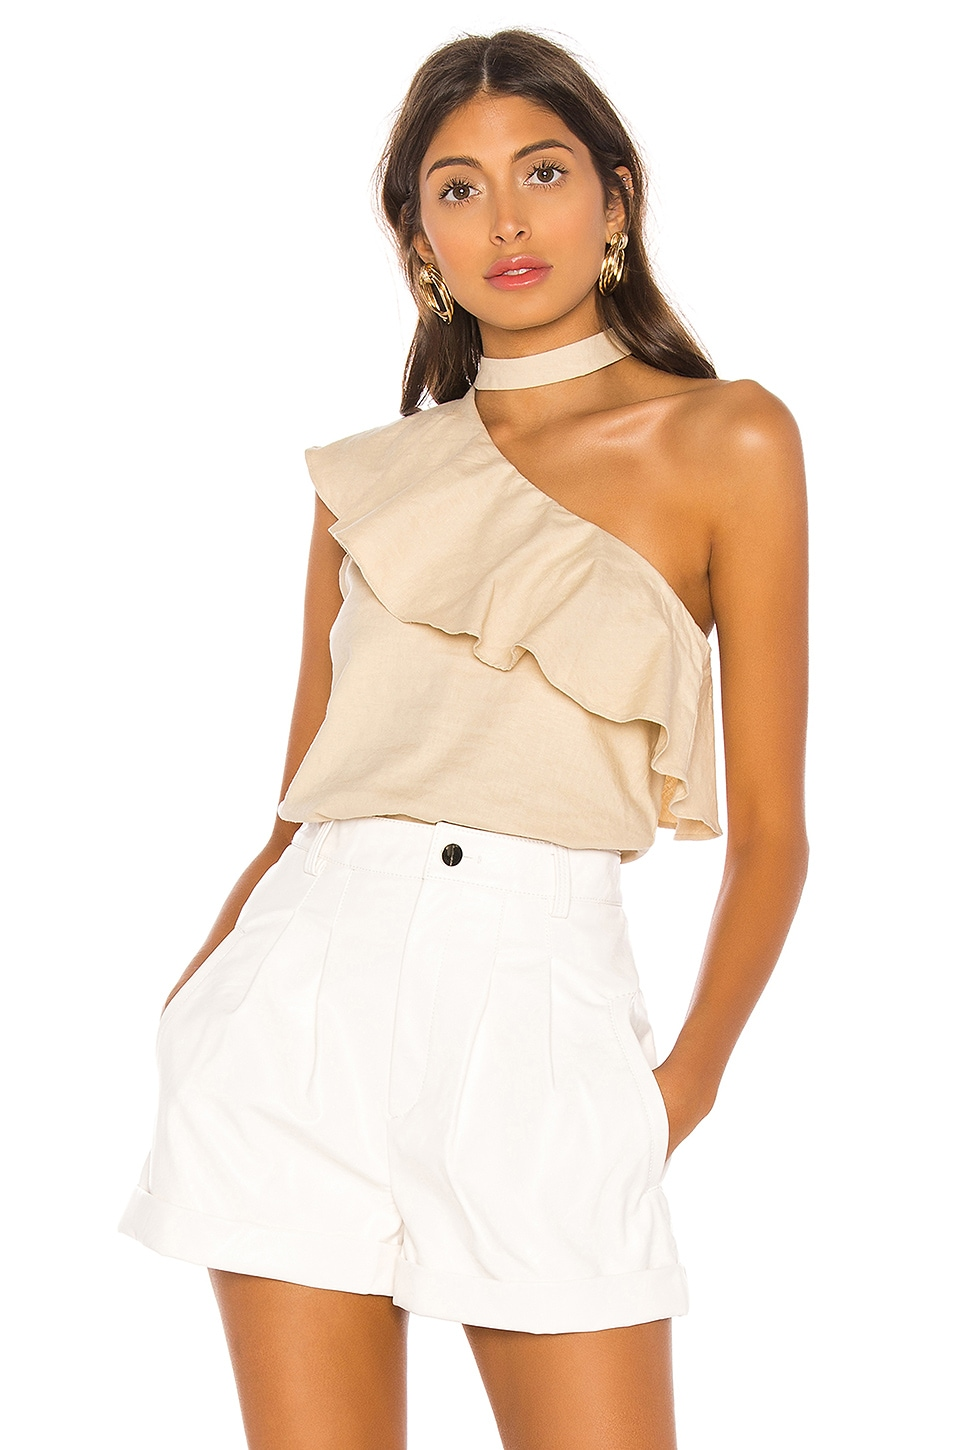 L'Academie The Seberg Top in Natural